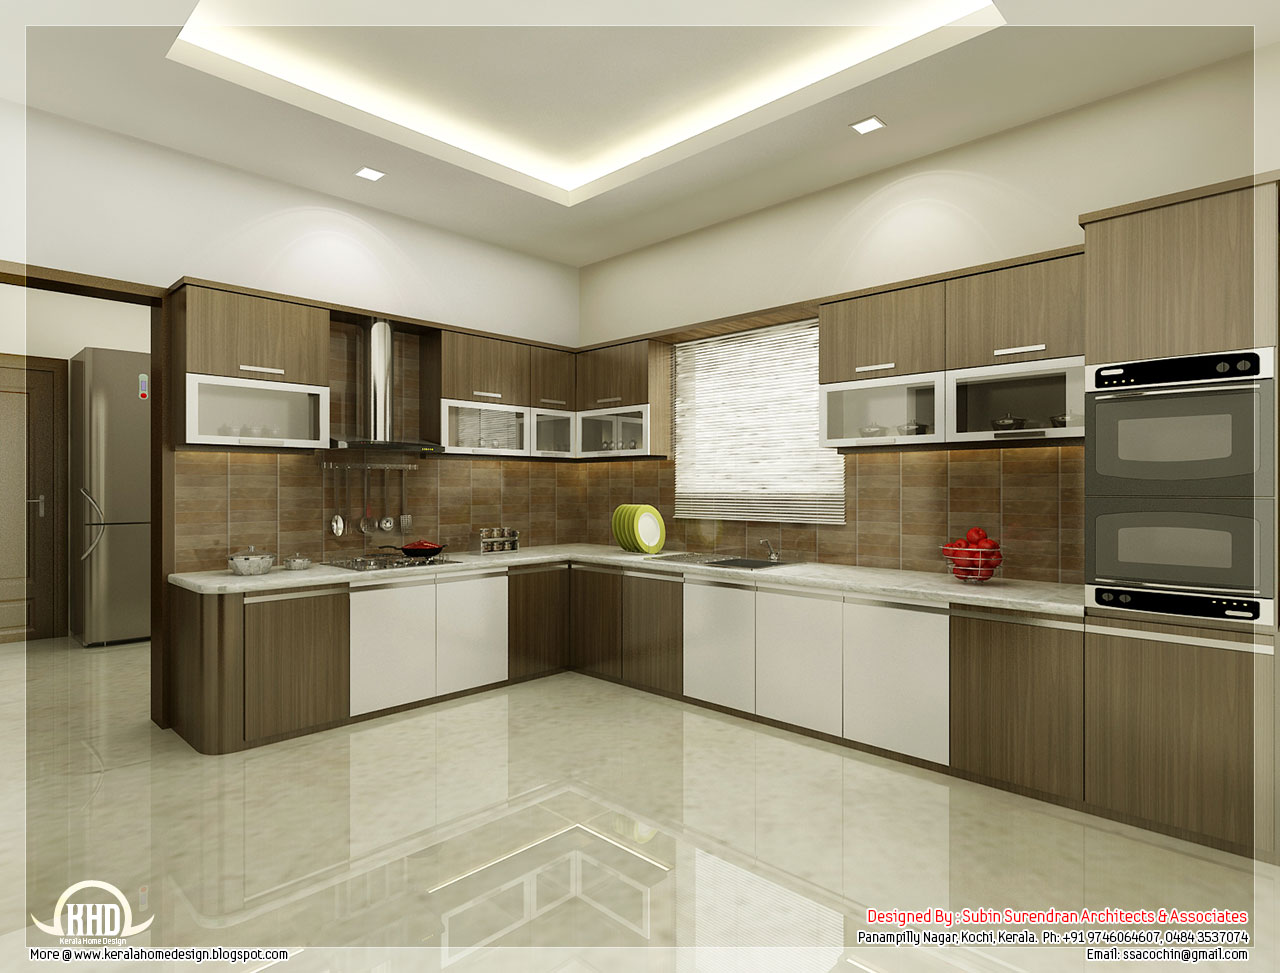 Dining and kitchen interior designs by Subin Surendran Architects ...